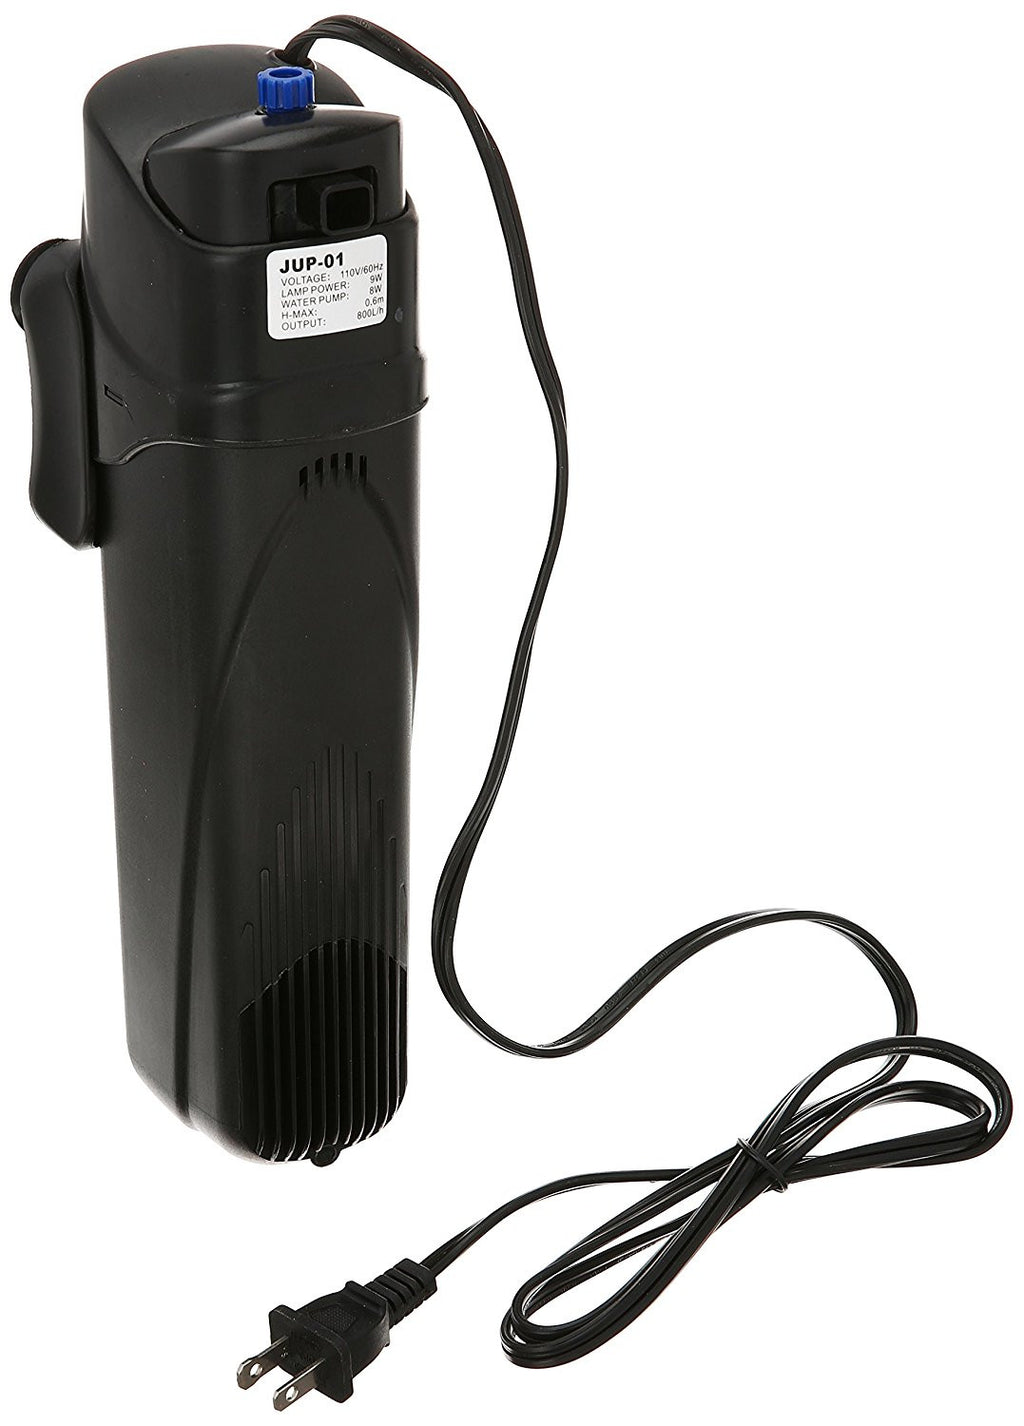 SunSun JUP-22 UV Steriliser (9W)